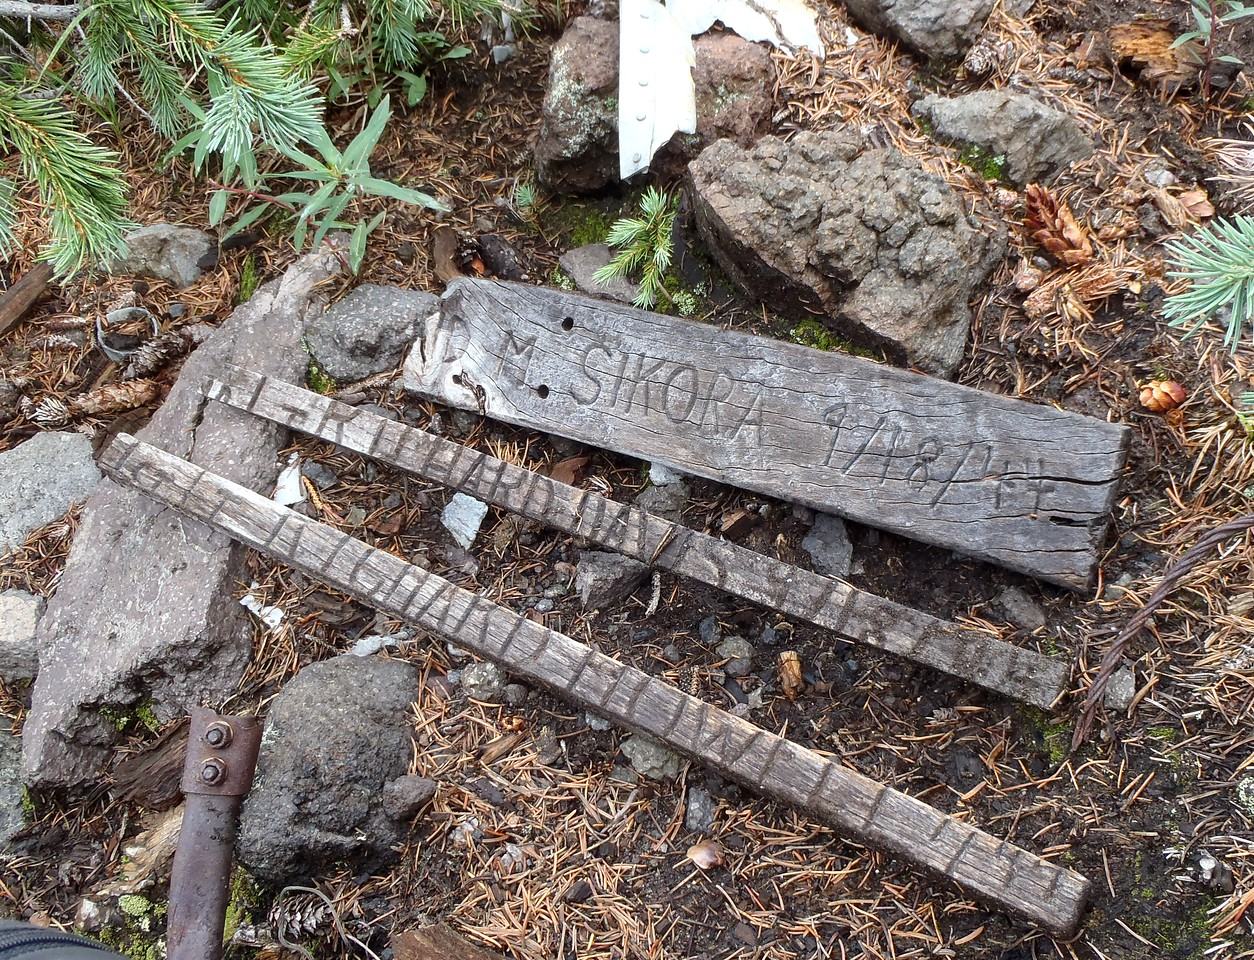 A few fragments of some crew memorial markers that were place at the crash site many years ago.